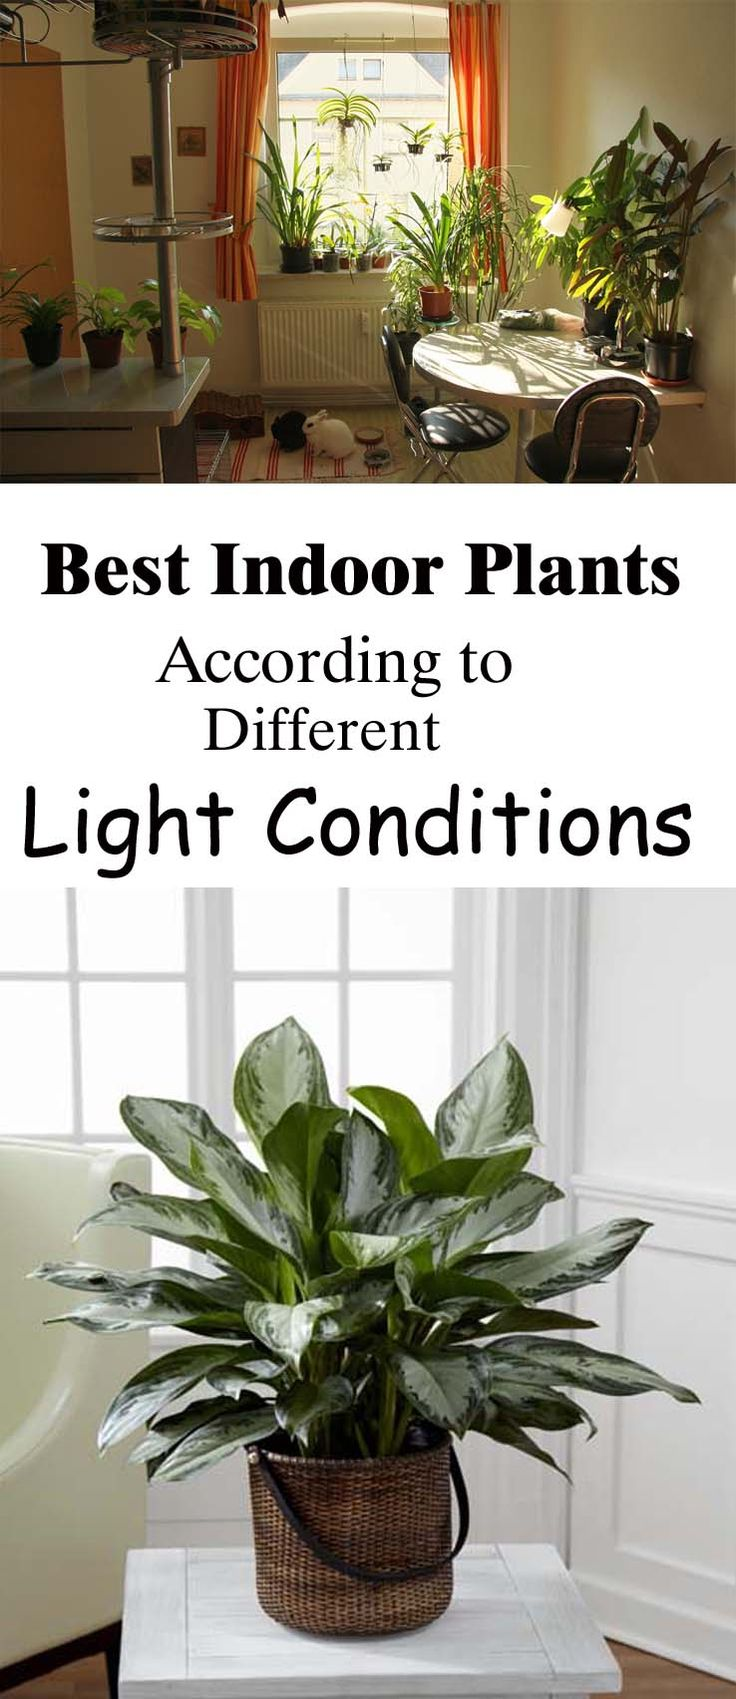 240 best plant babies images on pinterest landscaping architecture and exterior design - Best indoor house plants ...